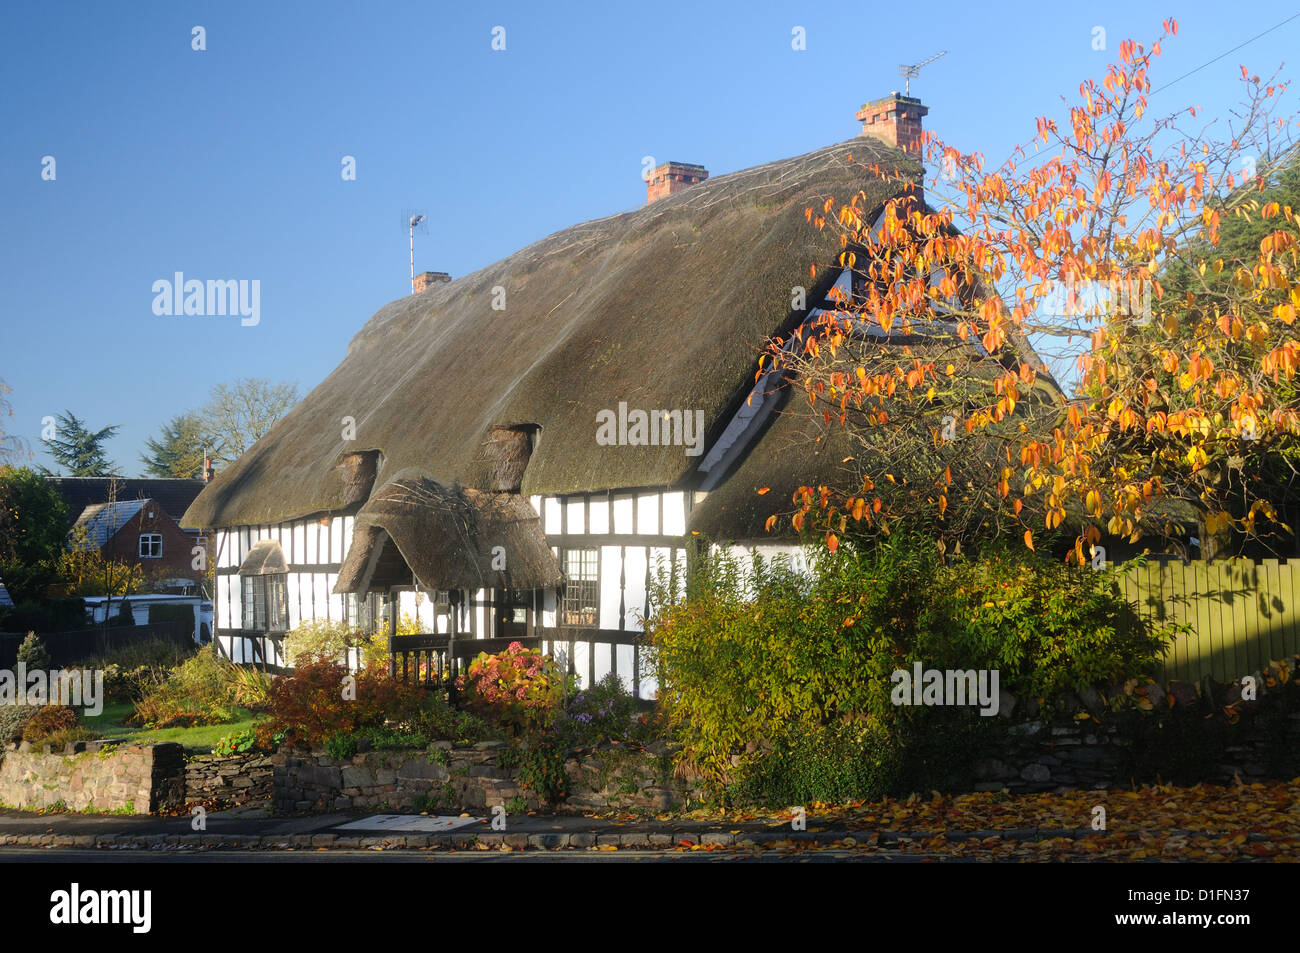 16th or 17th c. thatched cottage, named simply 'The Thatch', in Cropston, Leicestershire, England - Stock Image